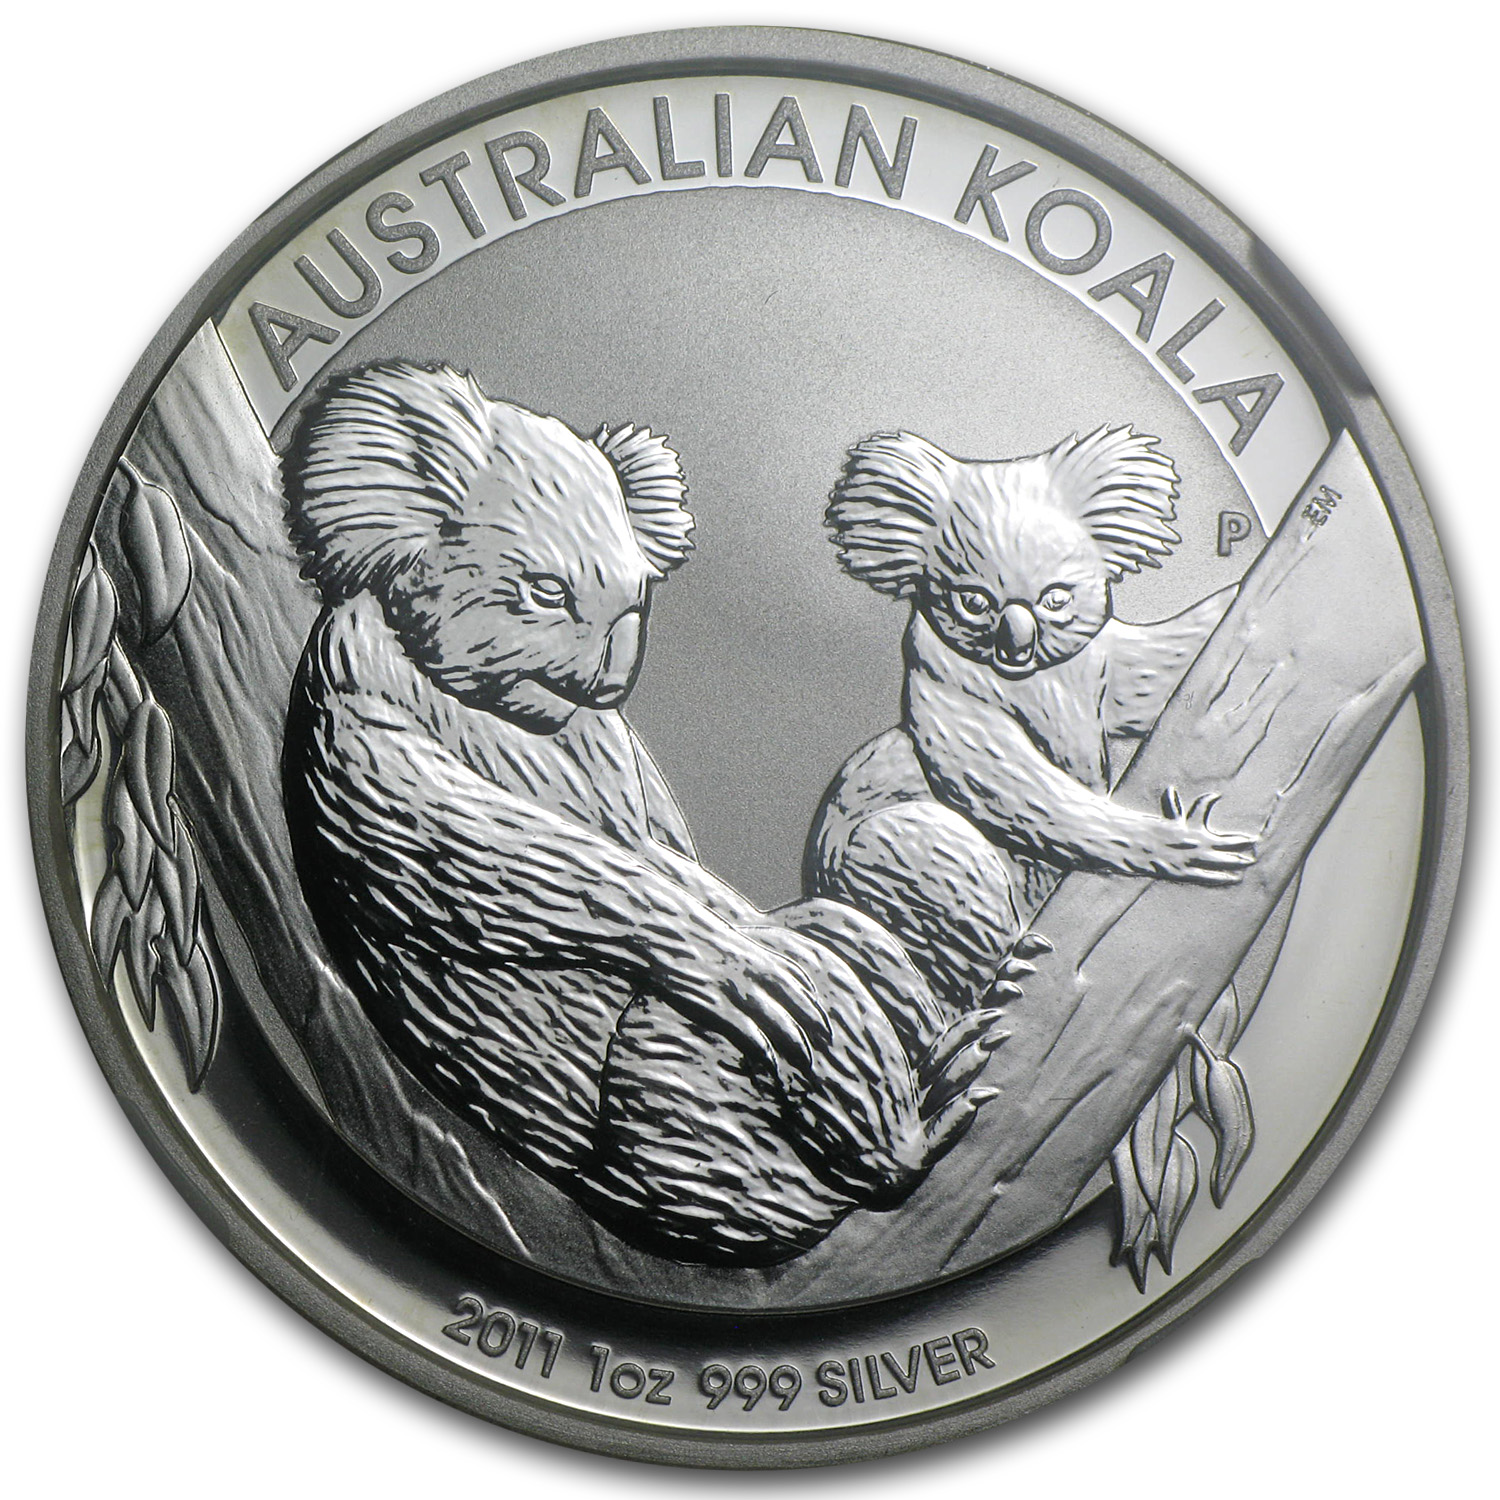 2011-P 1 oz Silver Australian Koala MS-70 NGC - First of 20,000